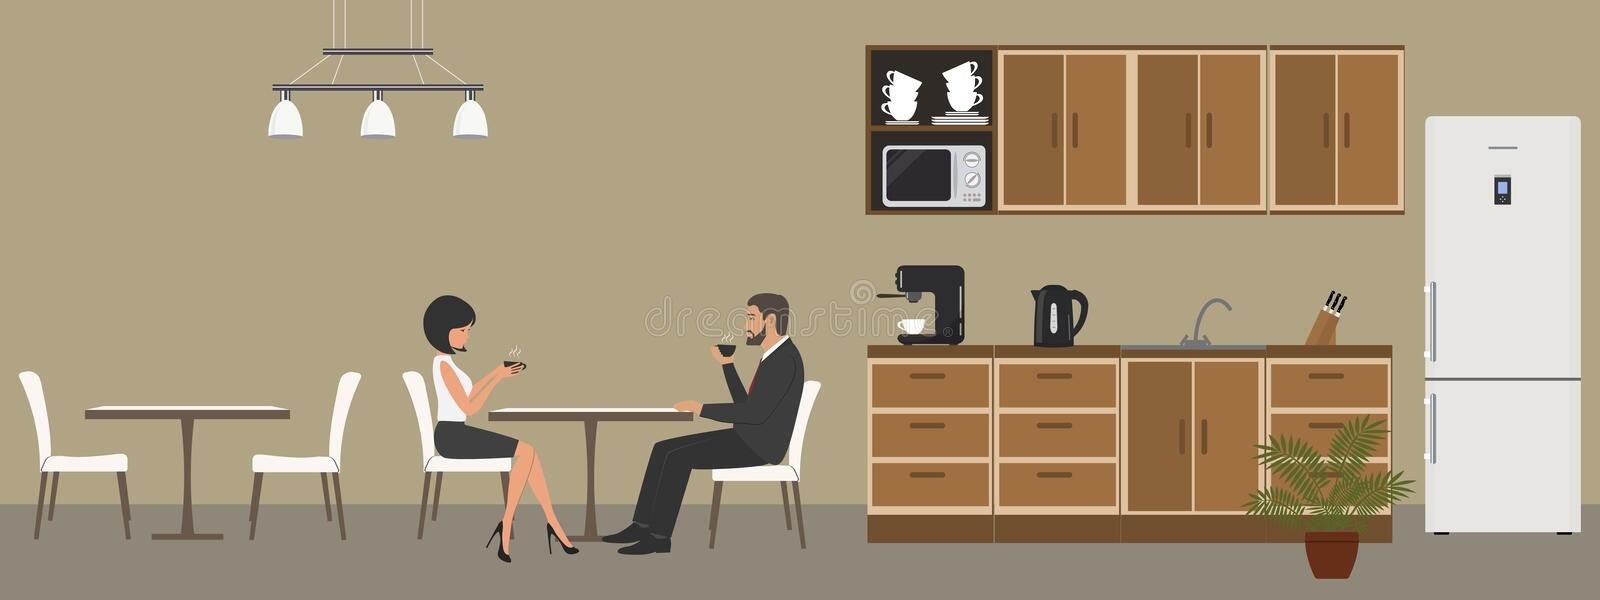 Office kitchen. Dining room in the office. Employees drink coffee at the table. Coffee break. There are kitchen cabinets, a fridge, a microwave, a kettle and a vector illustration